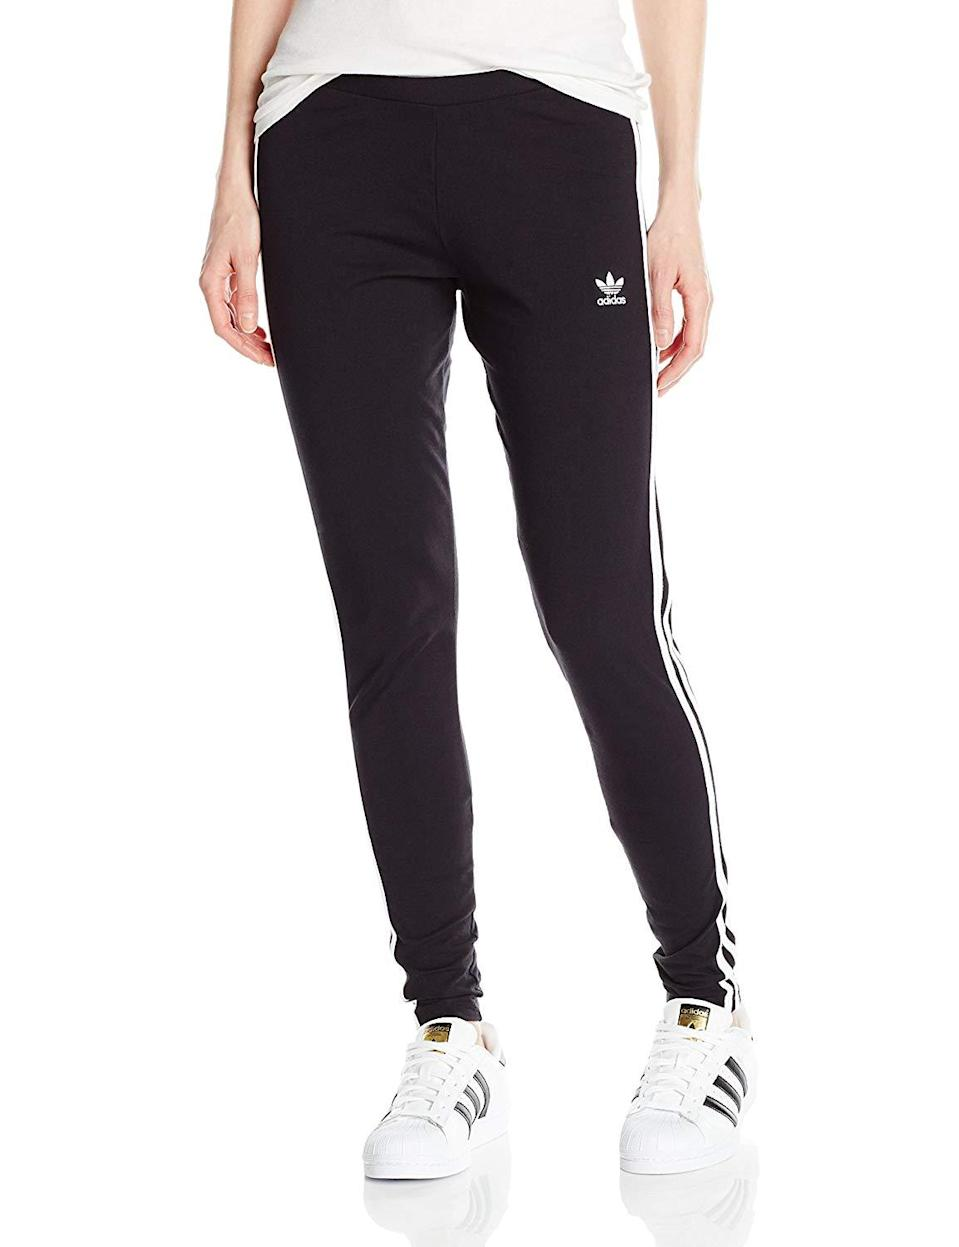 "<h3><a href=""https://www.amazon.com/adidas-Originals-Womens-3-Stripes-Leggings/dp/B072JTX8FP"" rel=""nofollow noopener"" target=""_blank"" data-ylk=""slk:Adidas 3-Stripes Leggings"" class=""link rapid-noclick-resp"">Adidas 3-Stripes Leggings</a> </h3><br><br>4.3 out of 5 stars and 3,241 reviews<br><br><strong>Promising Review:</strong> Reviewers are split between thinking they got a good deal on a pair of brand name leggings and thinking they should be receiving a higher quality item for the same reason. However, <a href=""https://www.amazon.com/gp/customer-reviews/R16NXDRDZI992H"" rel=""nofollow noopener"" target=""_blank"" data-ylk=""slk:one user"" class=""link rapid-noclick-resp"">one user</a> claims they're a good buy so long as you don't intend to do any high-impact workouts in them: ""I ordered these for a bar crawl that was 90s themed. They were perfect for that. The material is see through so that's something to take into consideration. They were pretty comfortable too. I'm not a fan of working out in leggings with this type of material though. Now I just wear them around my house with an oversized sweatshirt to lounge around in.""<br><br><strong>Adidas</strong> 3-Stripes Leggings, $, available at <a href=""https://www.amazon.com/adidas-Originals-Womens-3-Stripes-Leggings/dp/B072JTX8FP"" rel=""nofollow noopener"" target=""_blank"" data-ylk=""slk:Amazon"" class=""link rapid-noclick-resp"">Amazon</a>"